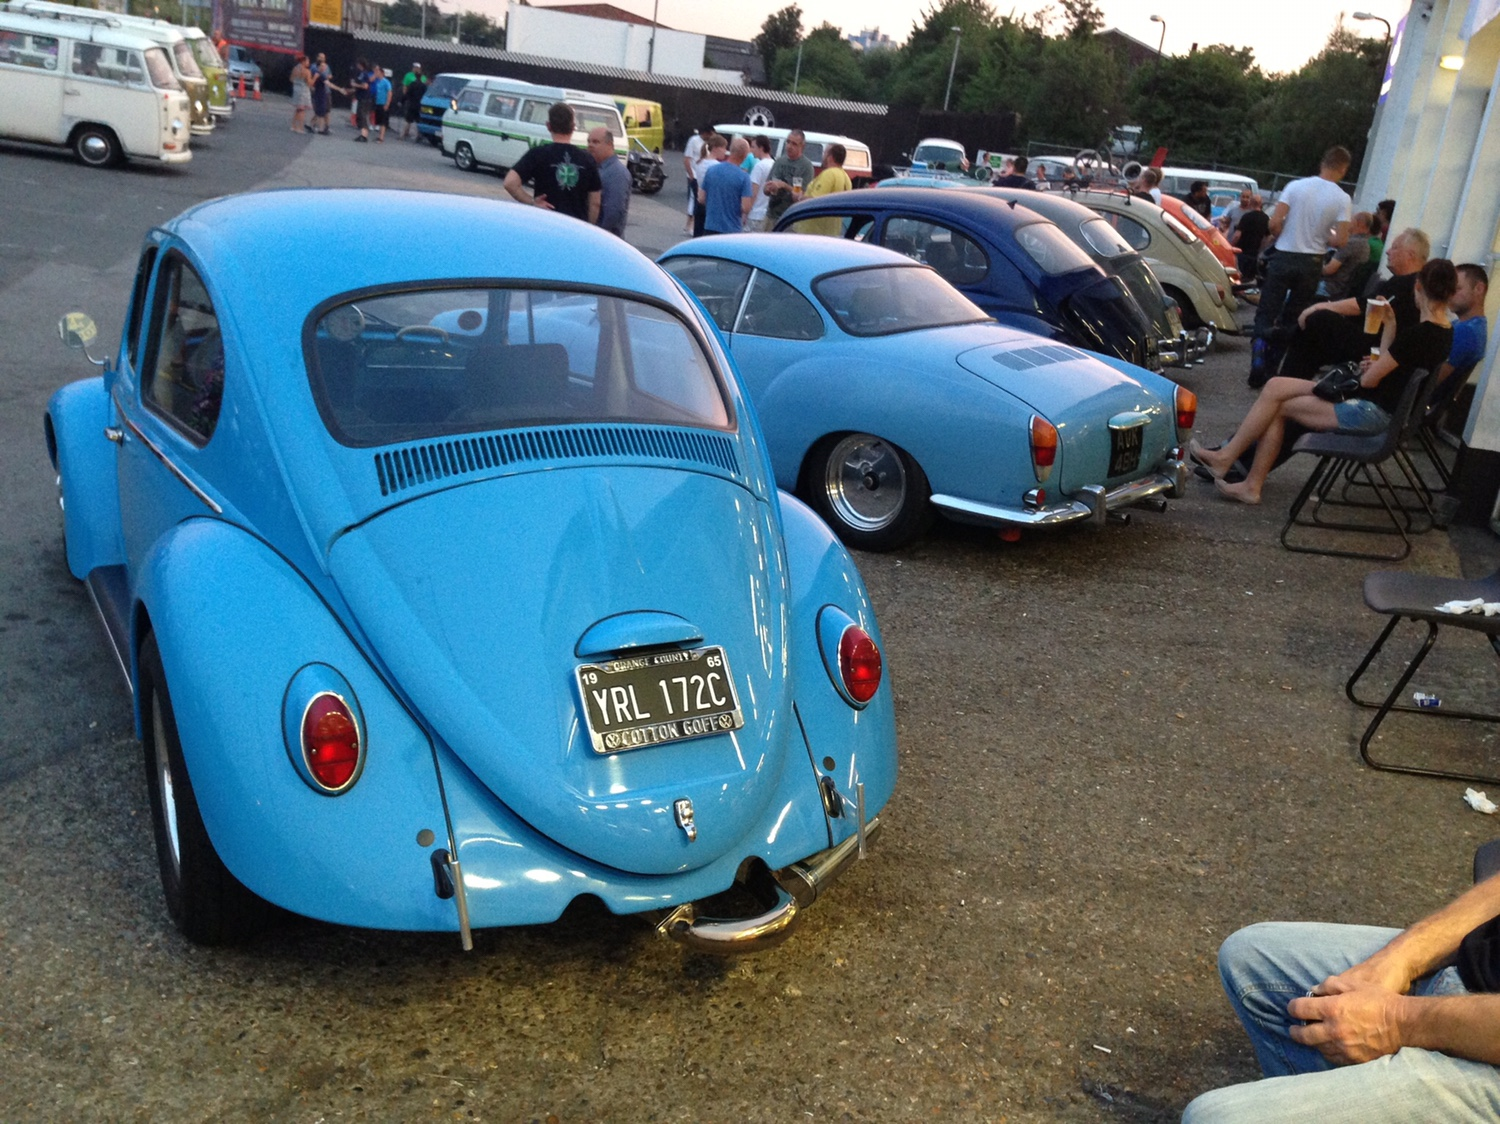 For Sale Keith Seumes 65 dkp cal looker bluey - VW Forum - VZi